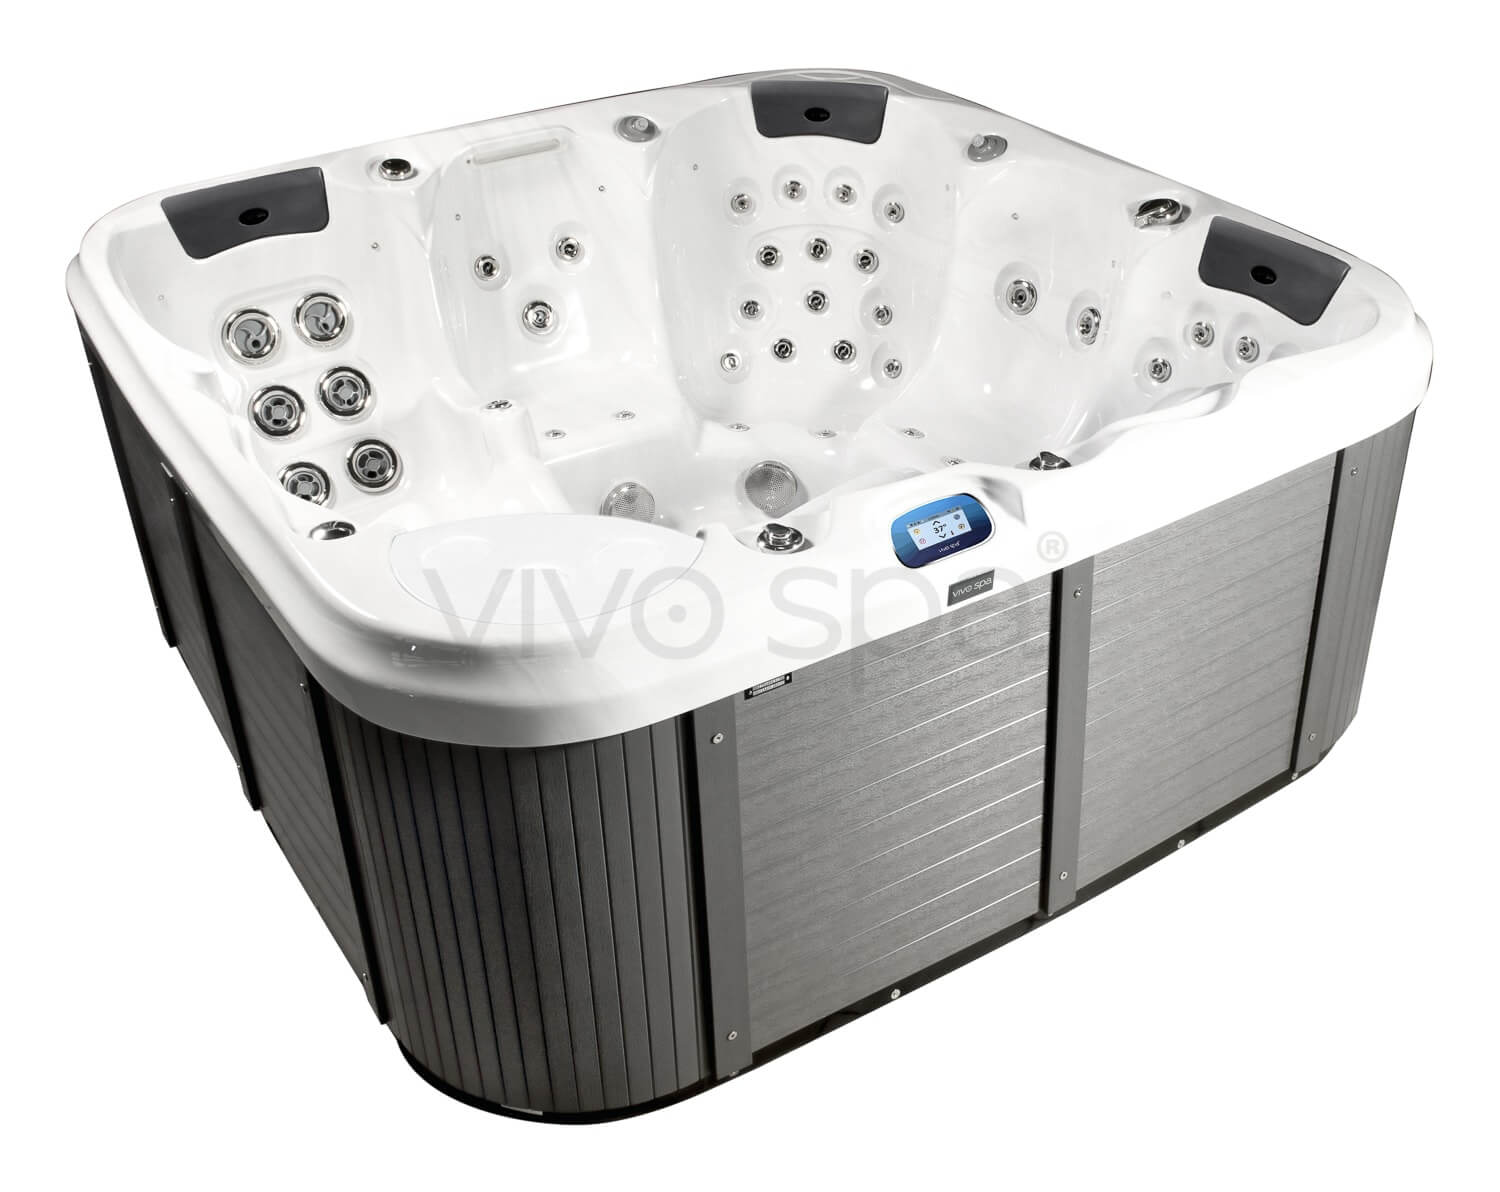 Whirlpool Outdoor Groß Whirlpools Outdoor Für Zuhause Whirlpool Center